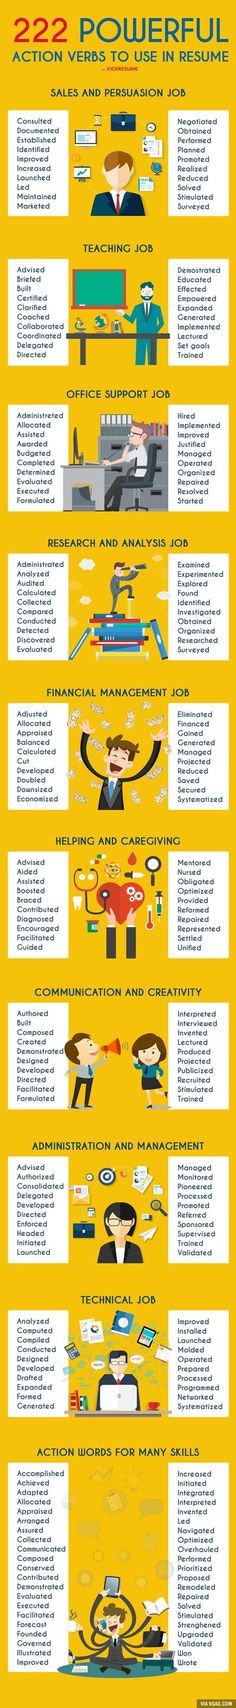 Resume Cheat Sheet: 222 Action Verbs To Use In Your New Resume - www.viralpx.com